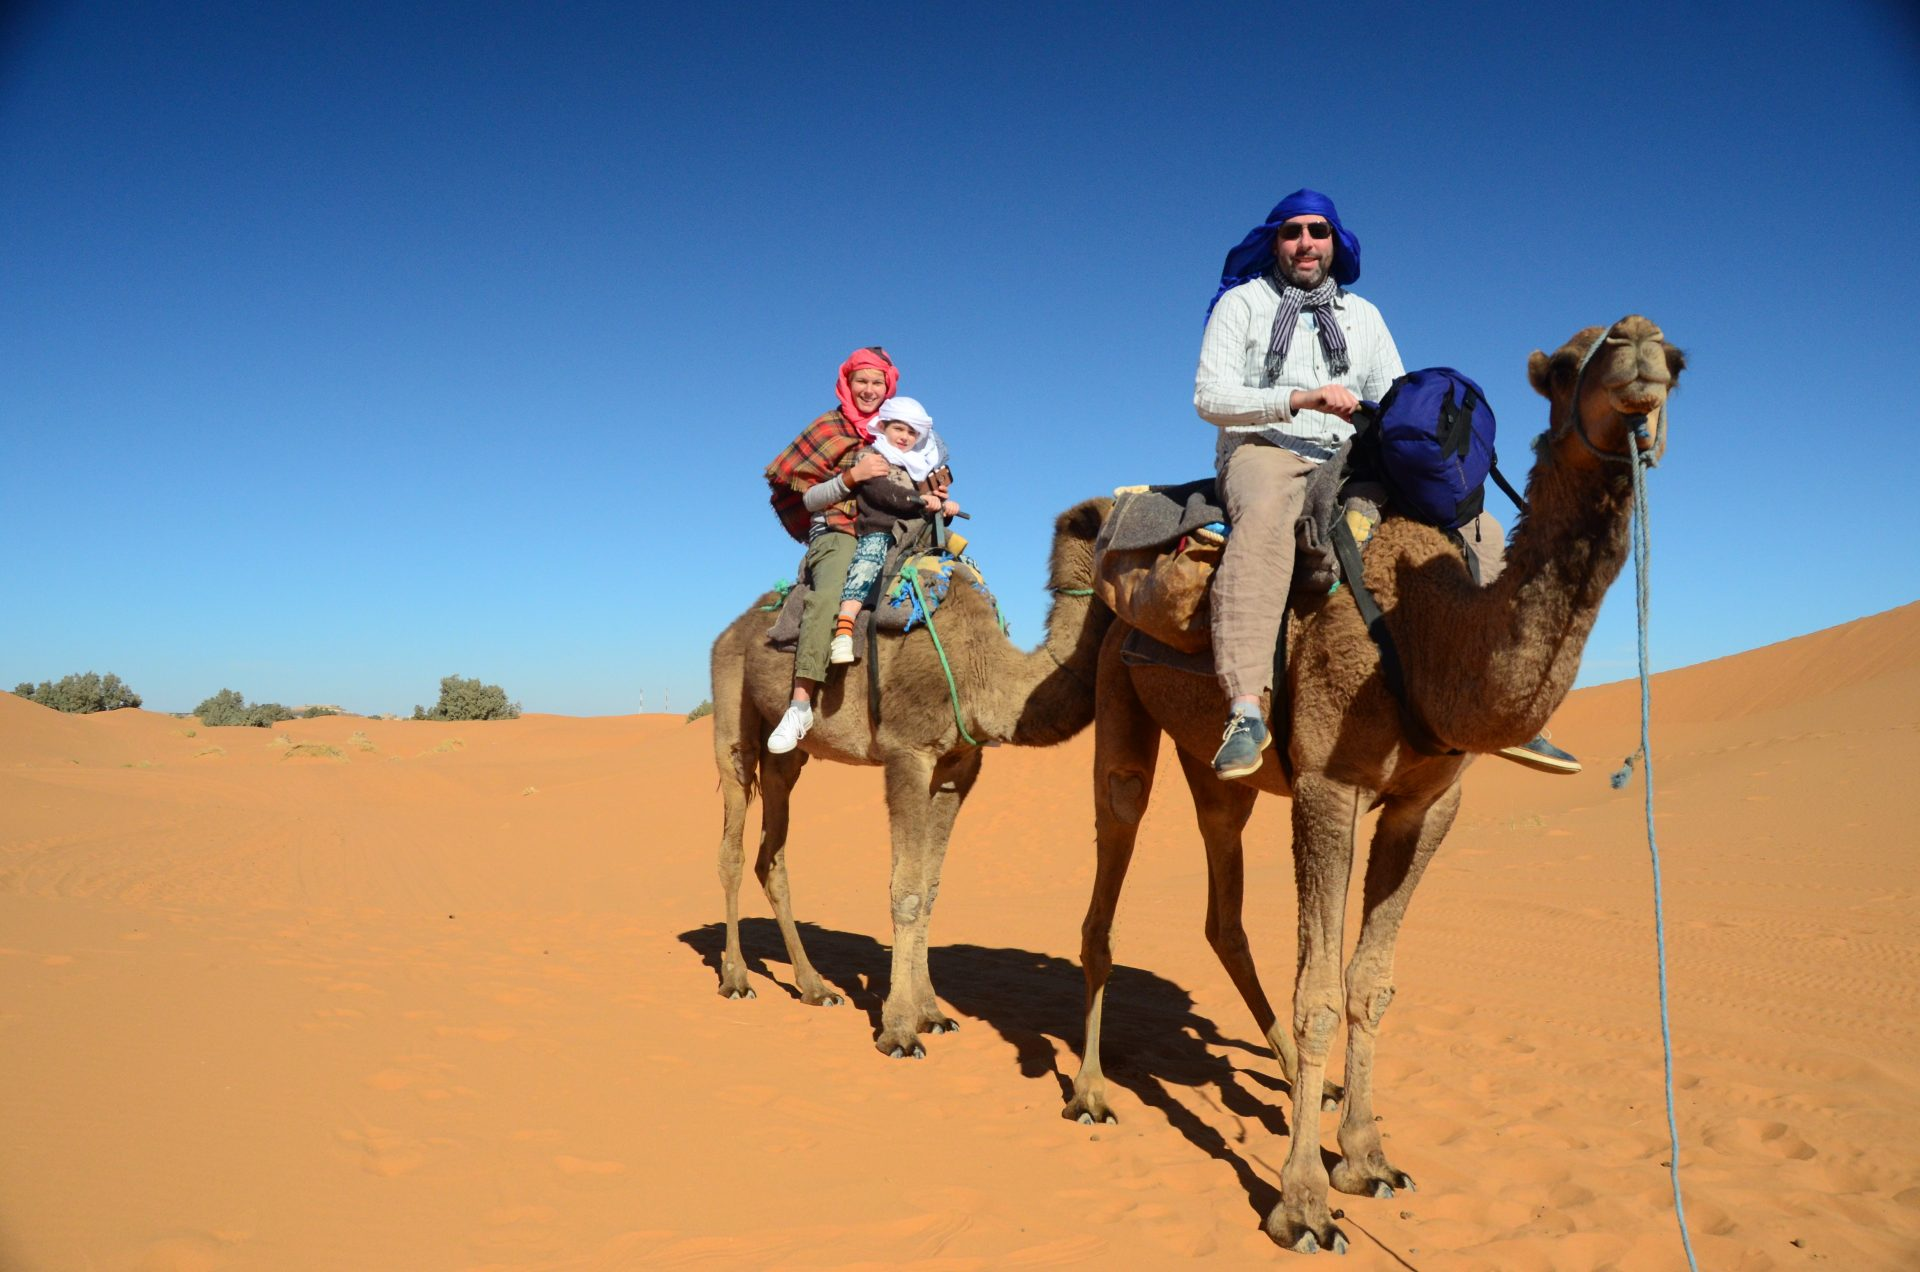 Morocco | Sahara Desert Adventure With Kids